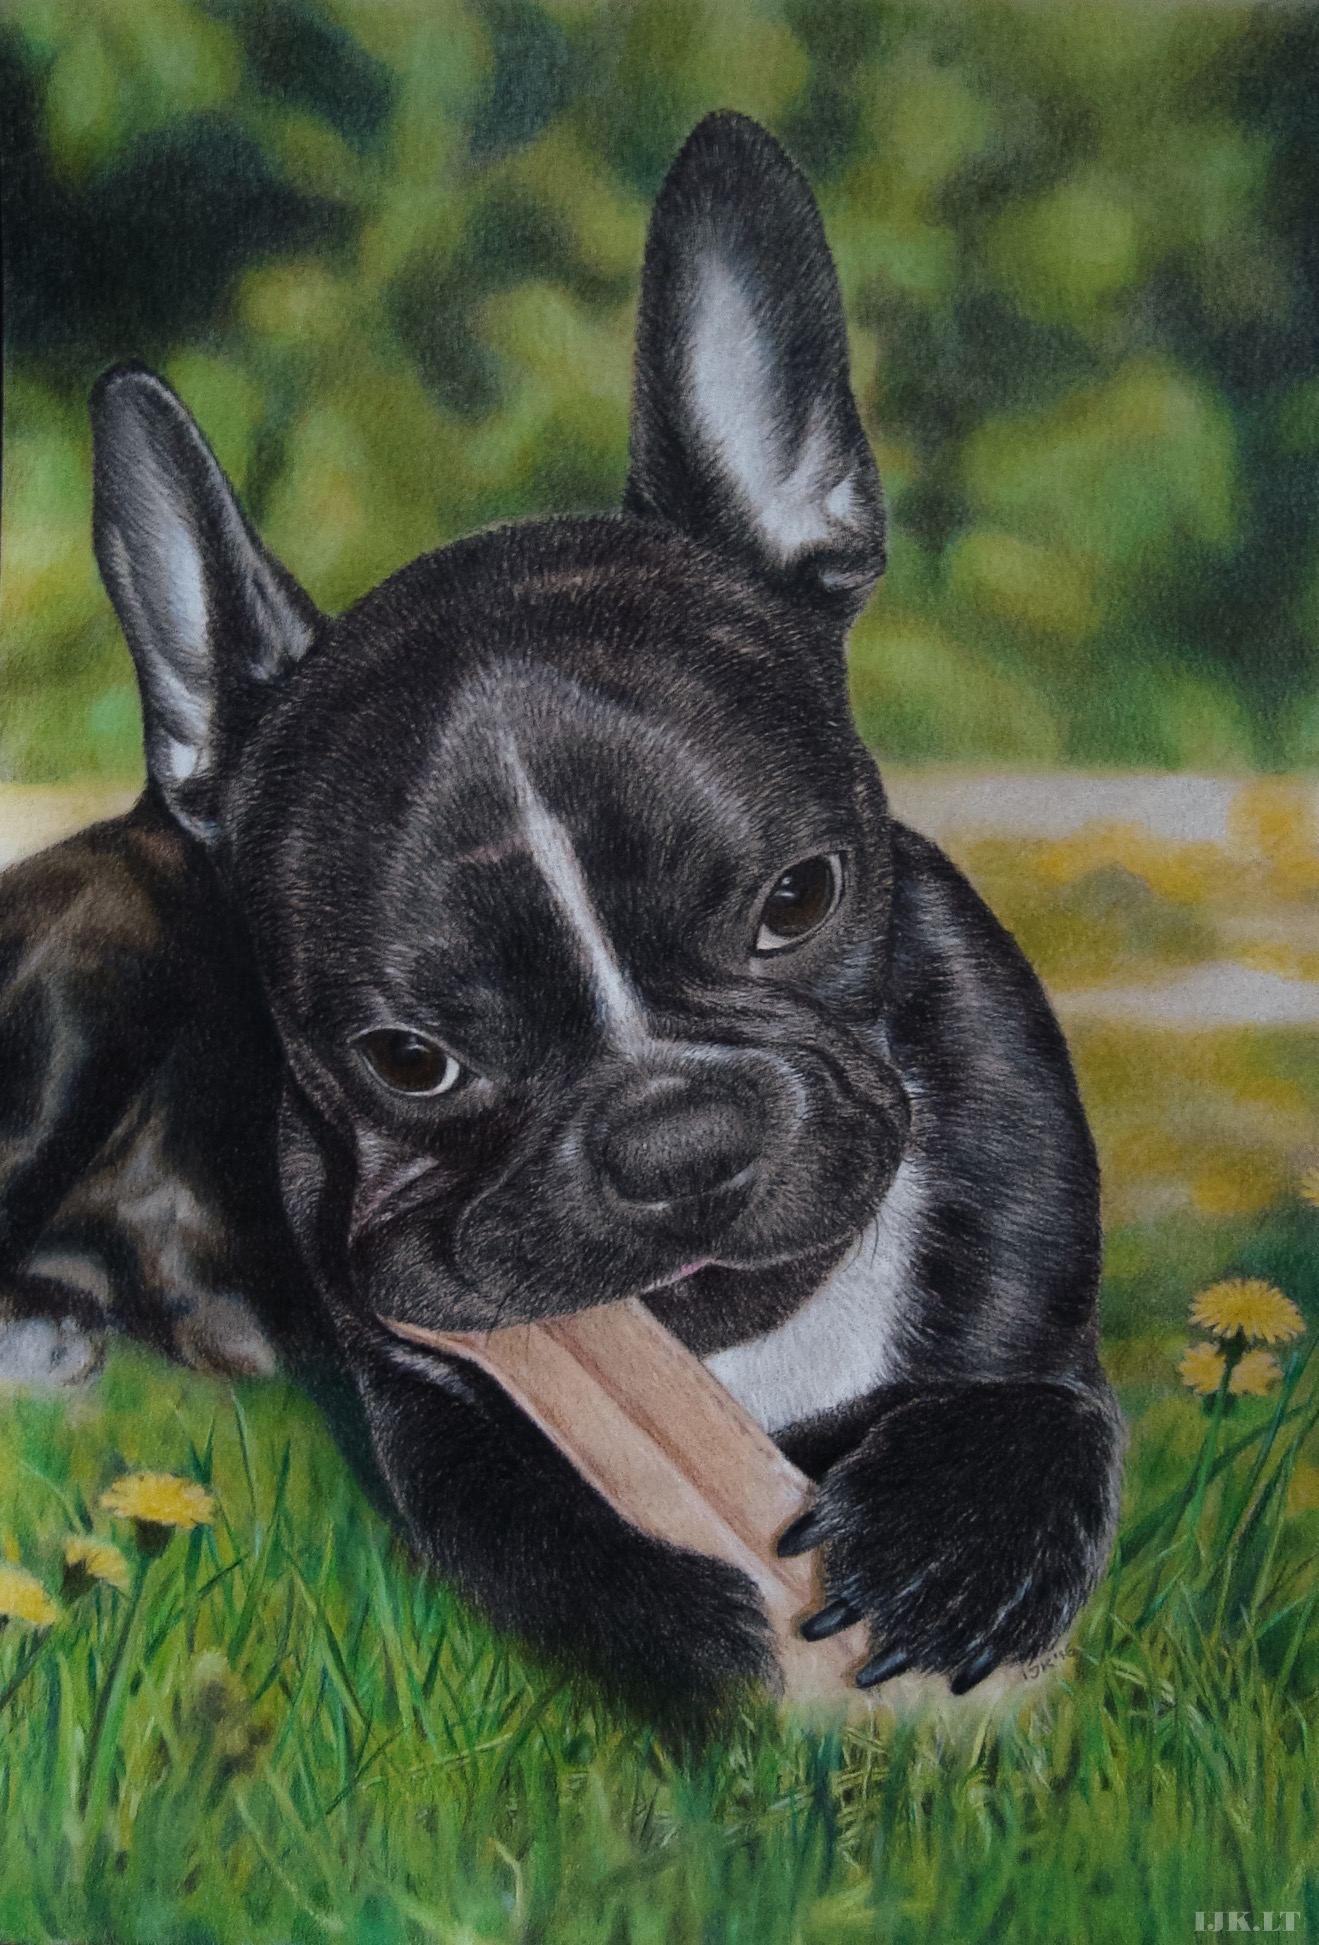 Dog portrait, puppy drawing, animal artwork, nature